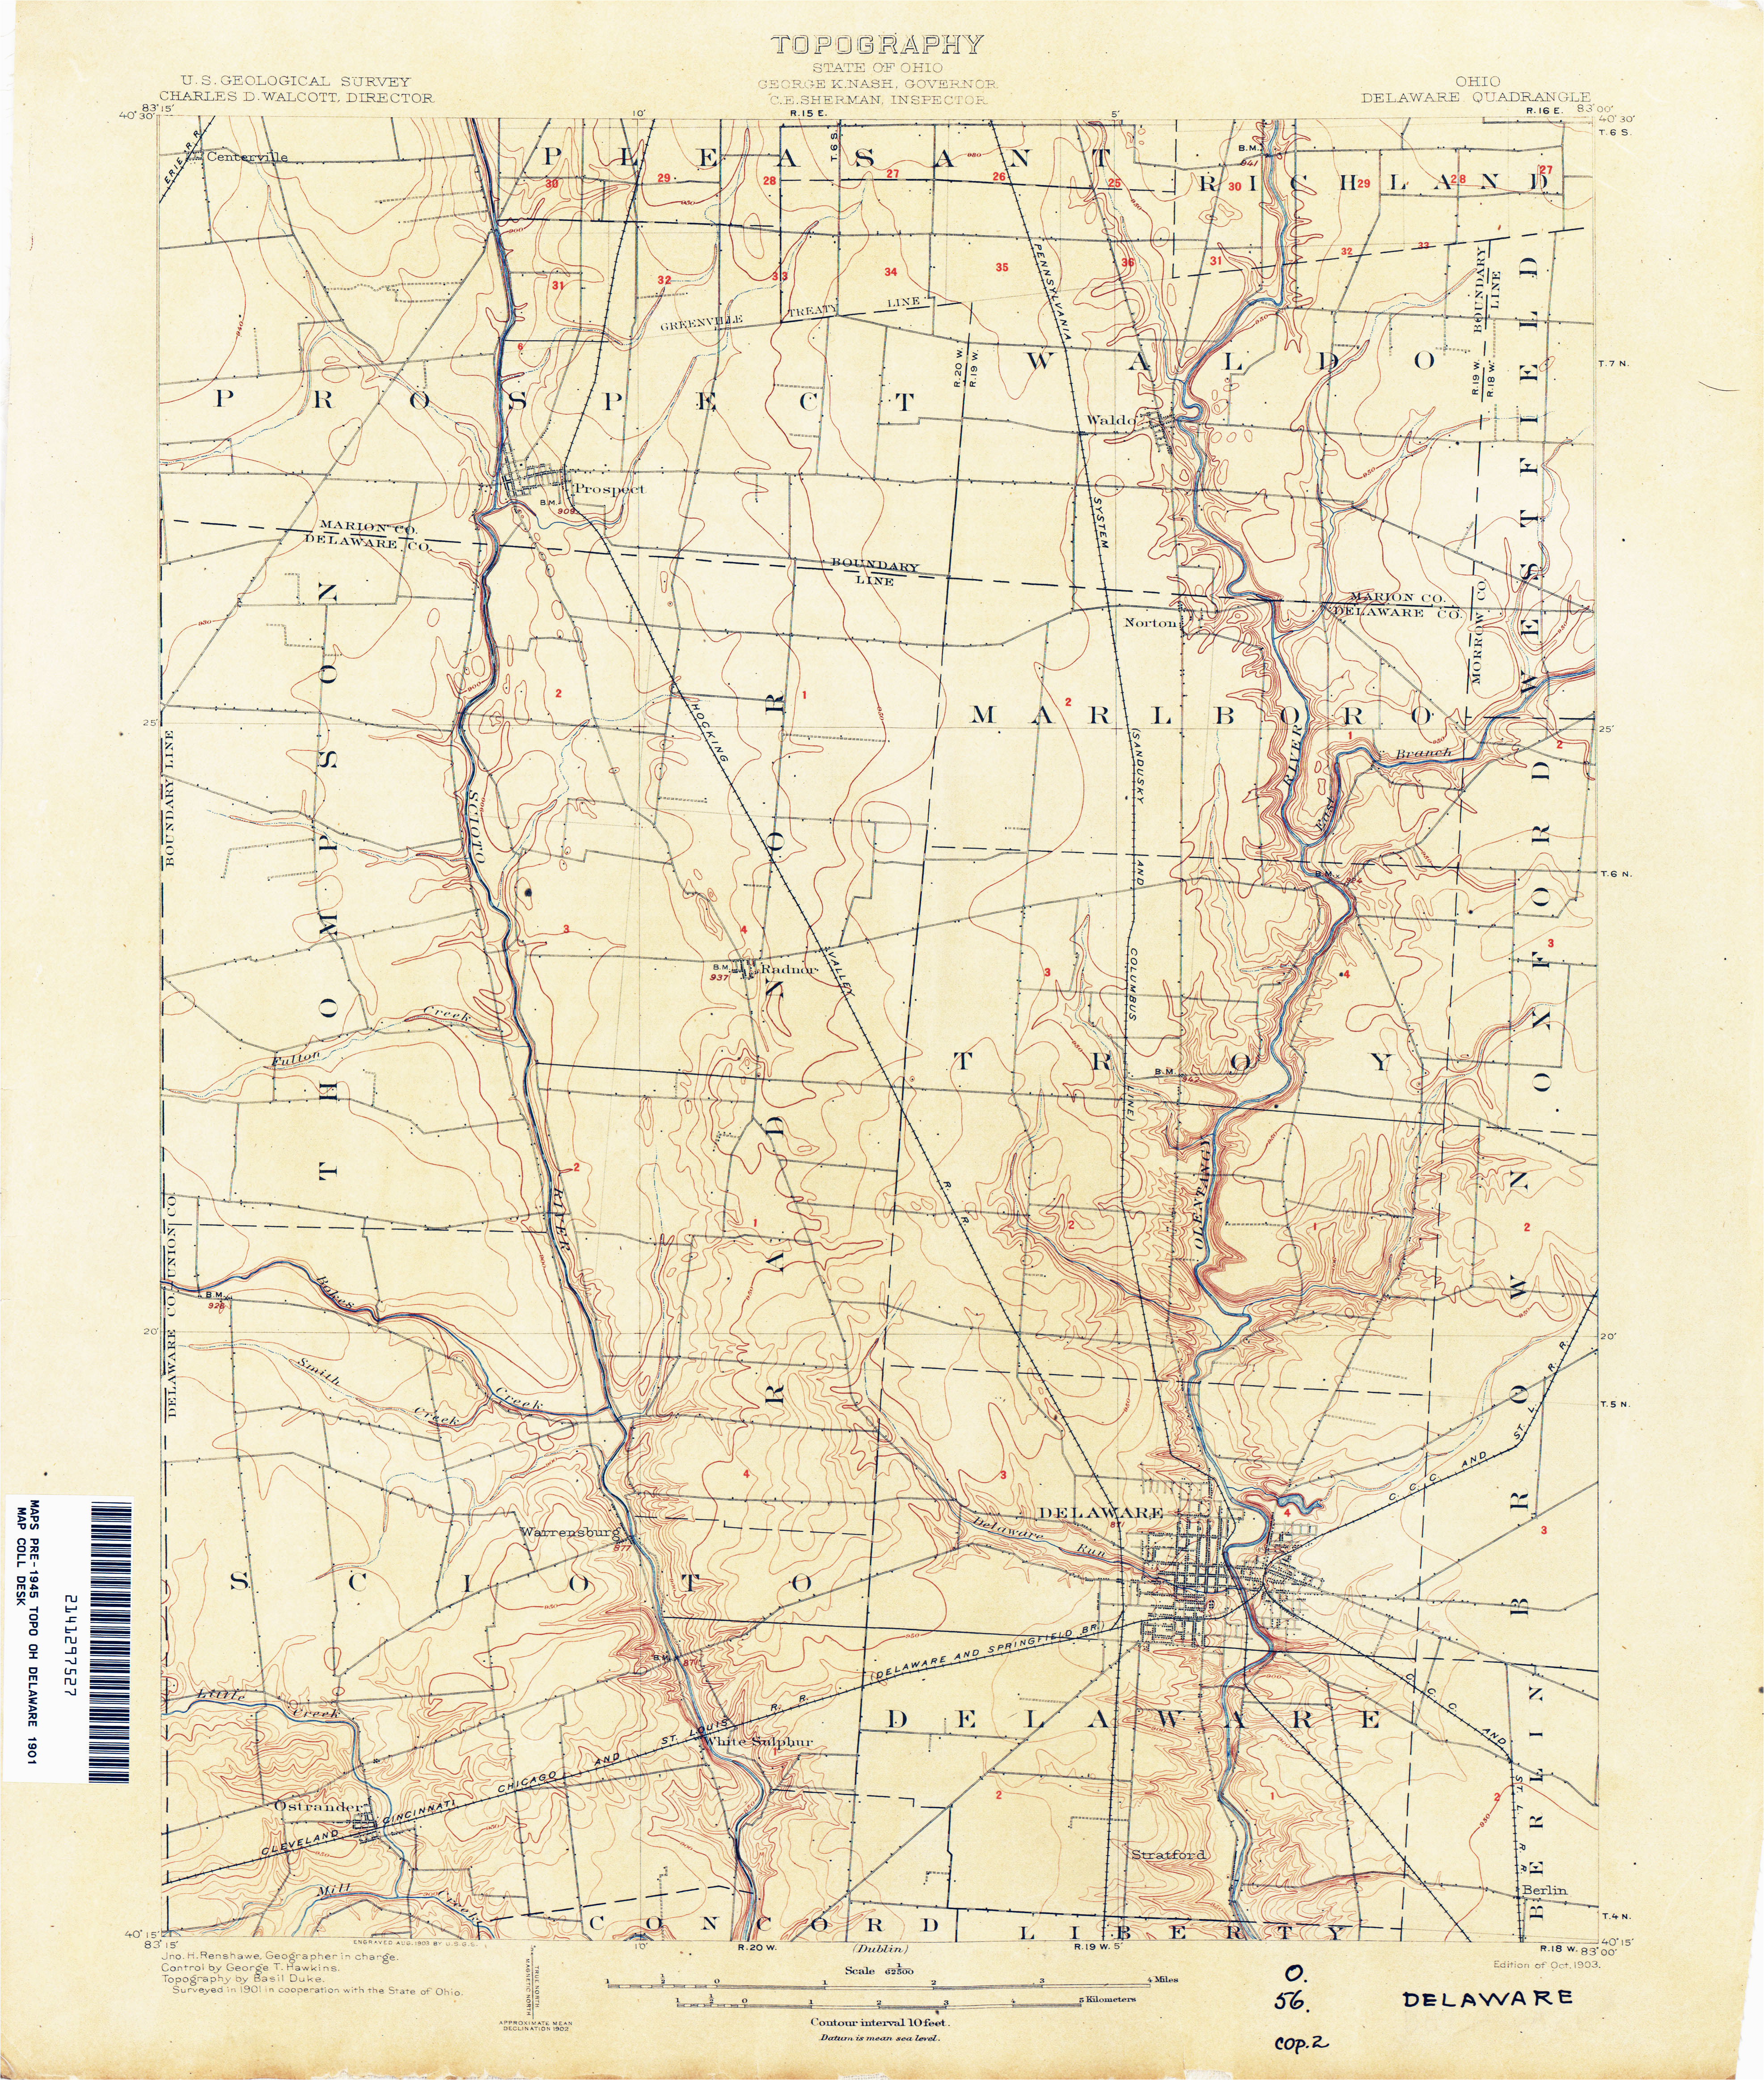 Map Of Delaware County Ohio Ohio Historical topographic Maps Perry Castaa Eda Map Collection